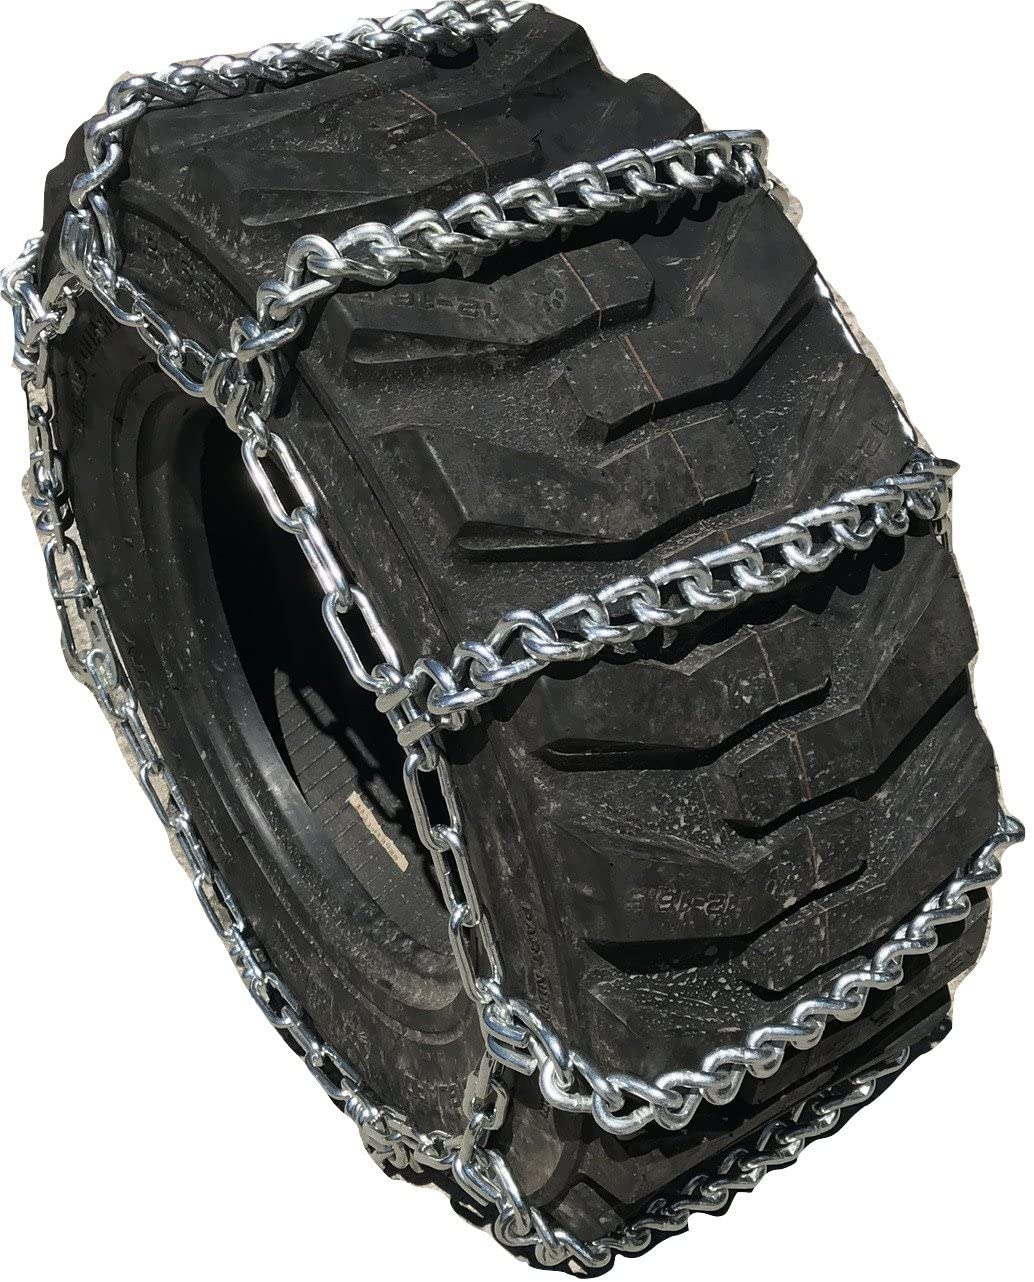 TireChain.com Compatible w/New Holland TS110 16.9-30 Tractor Tire Chains